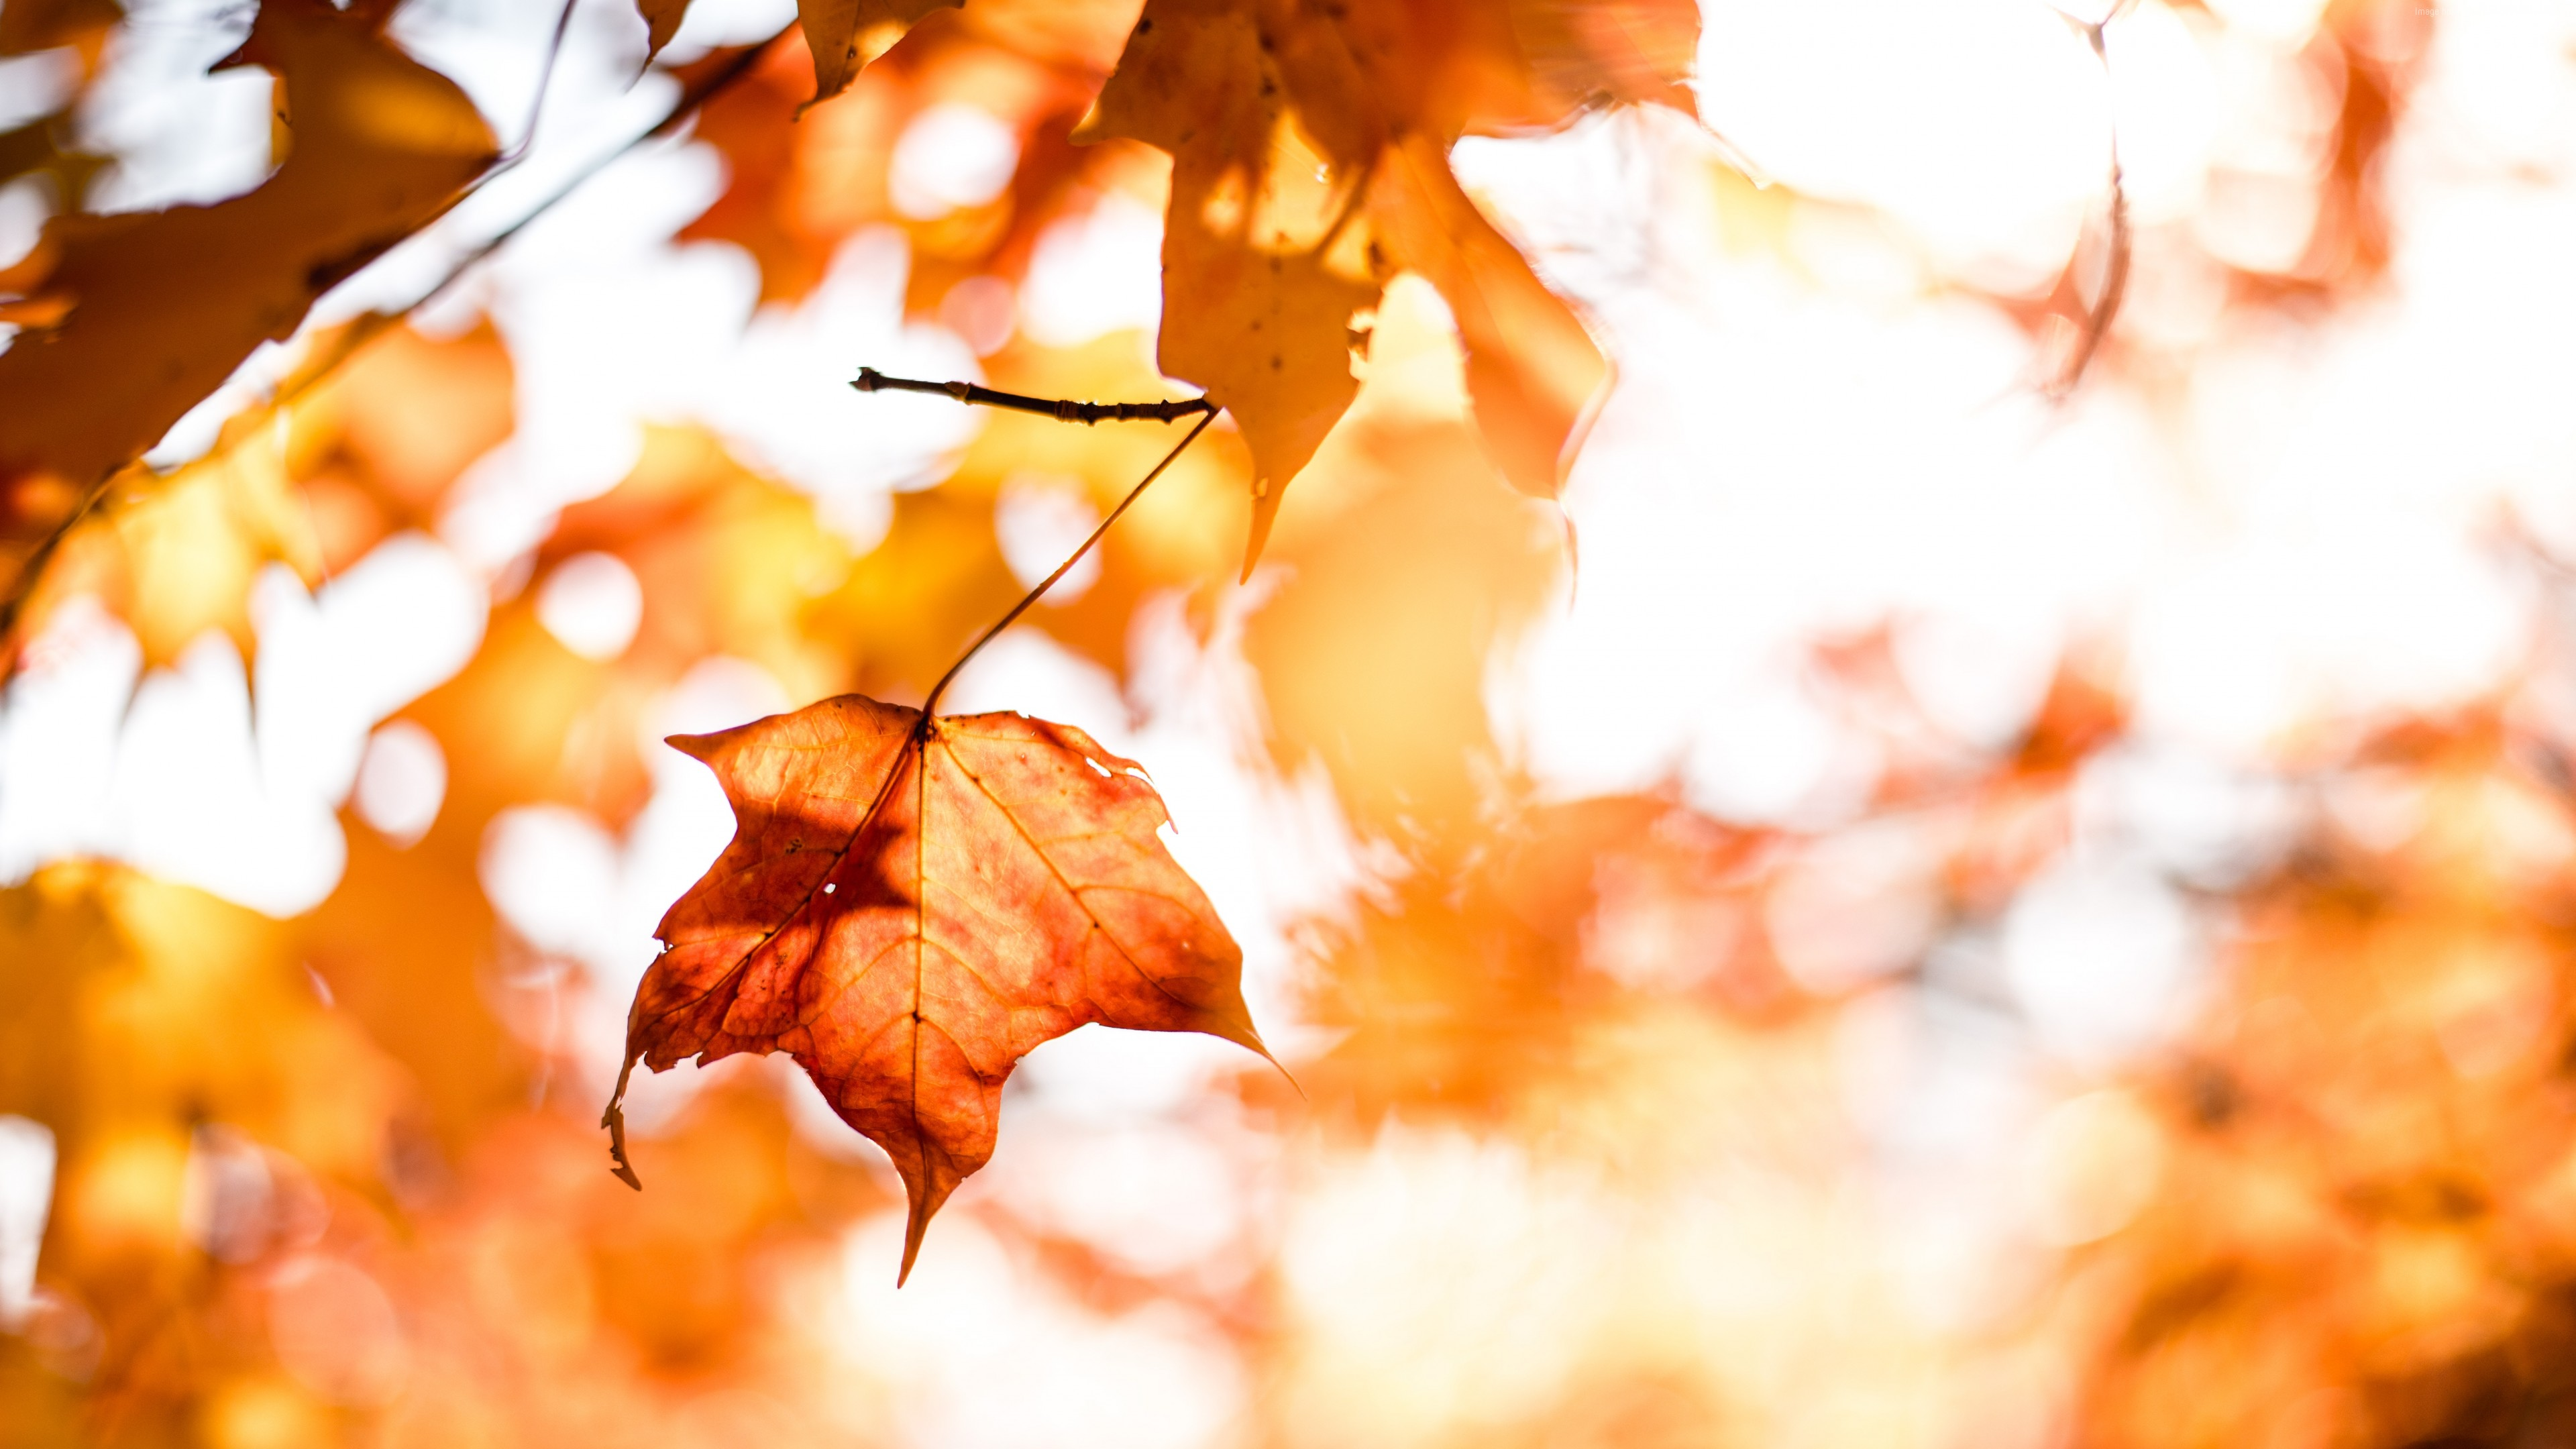 Wallpaper Leaves Autumn Orange 5k Nature Download